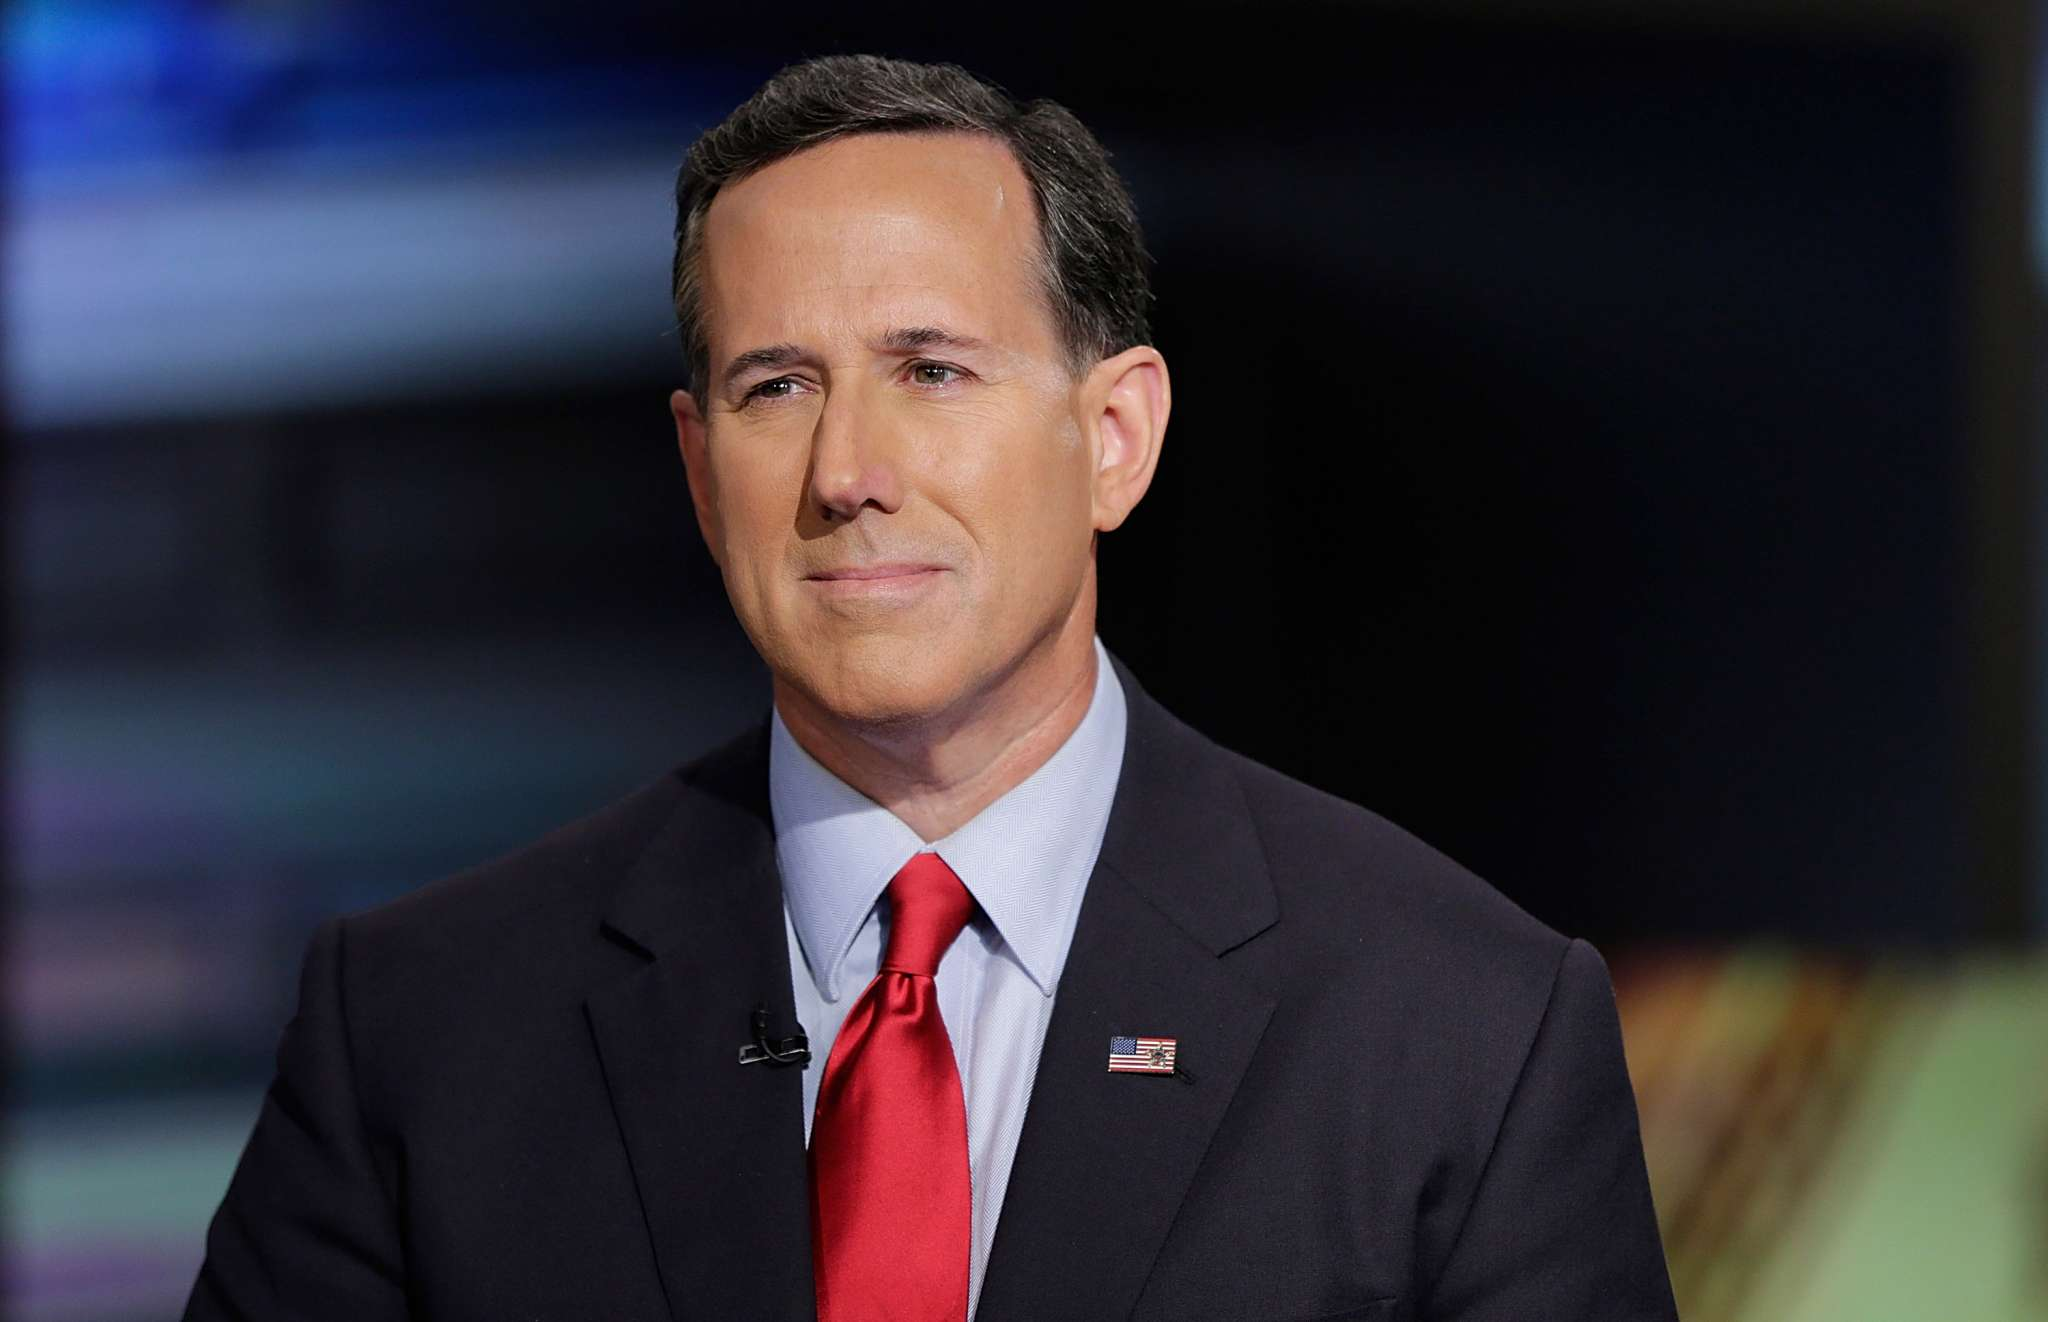 rick-santorum-fired-from-cnn-after-racist-statement-against-native-americans-and-social-media-is-very-glad